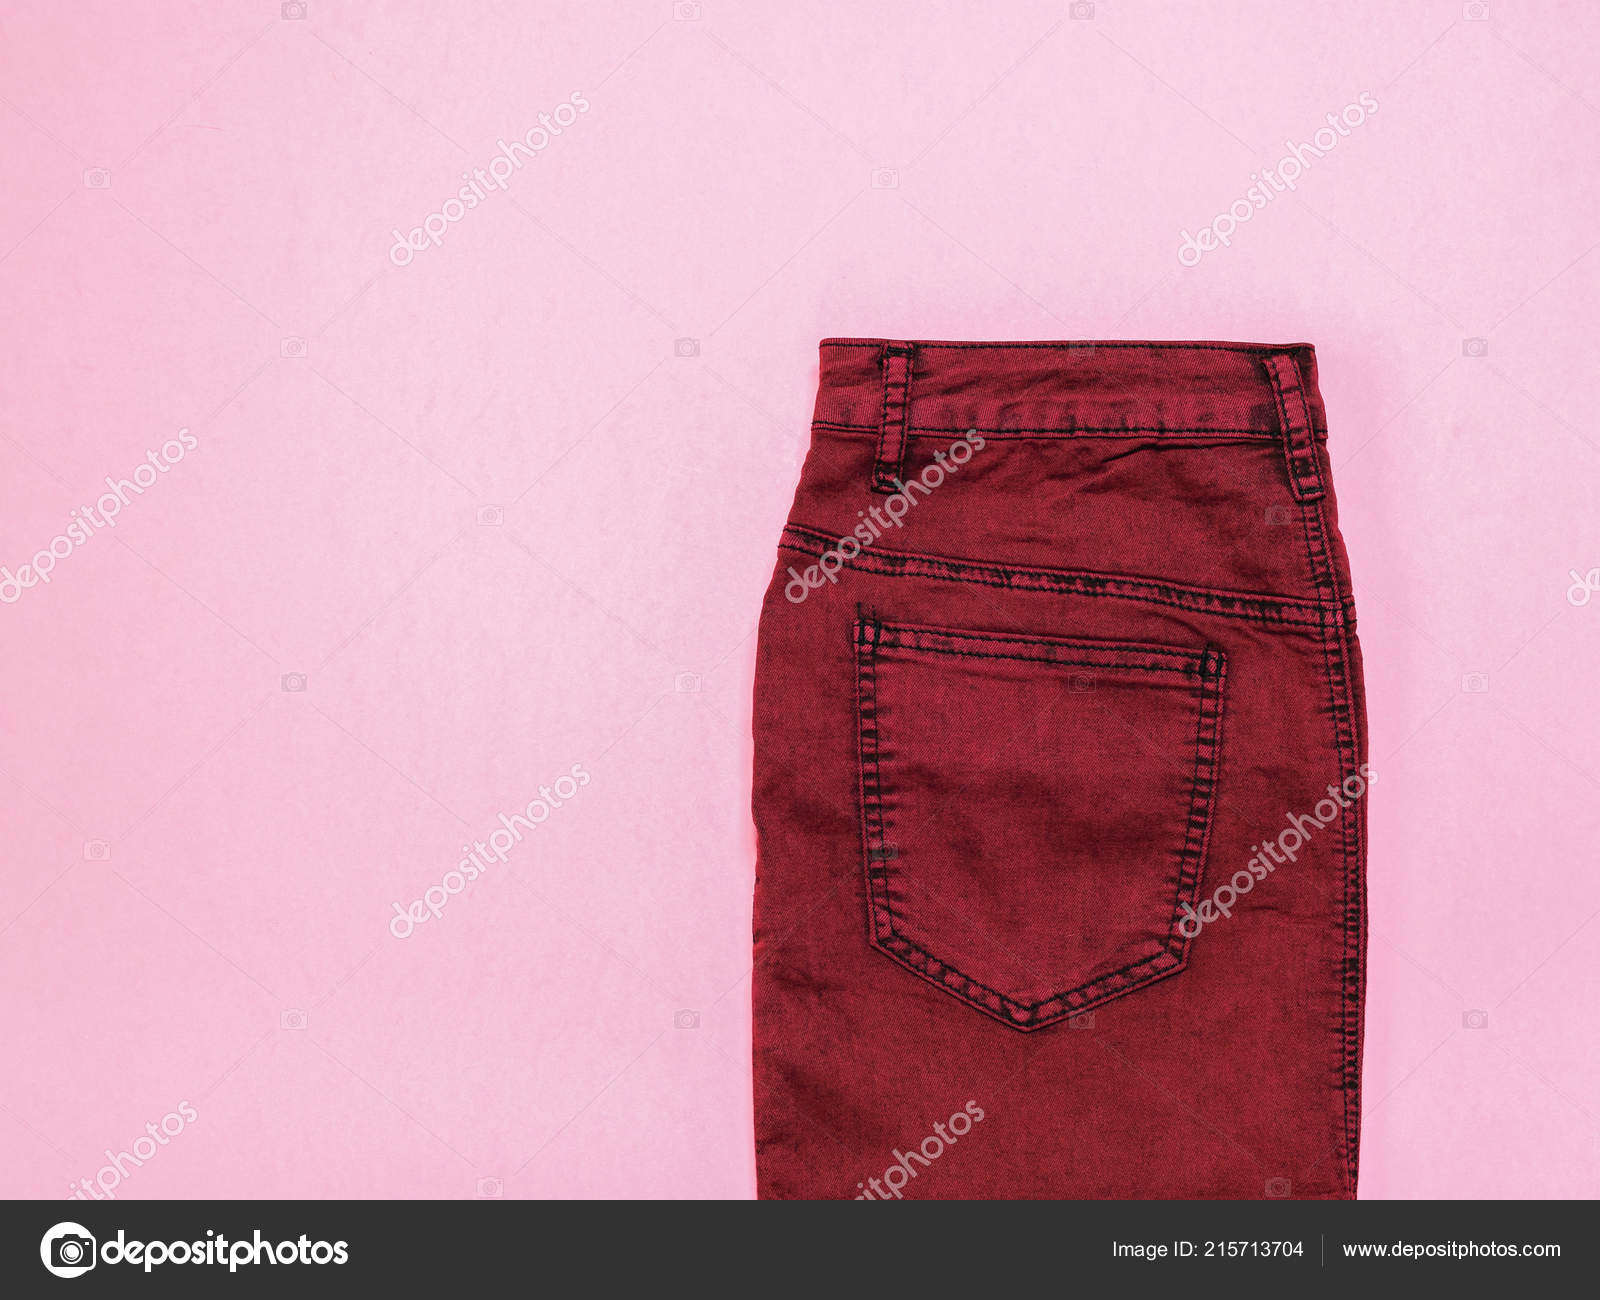 51b665673 Burgundy denim skirt on pink background. Fashionable denim women's  clothing. Denim women's clothing on colored background.